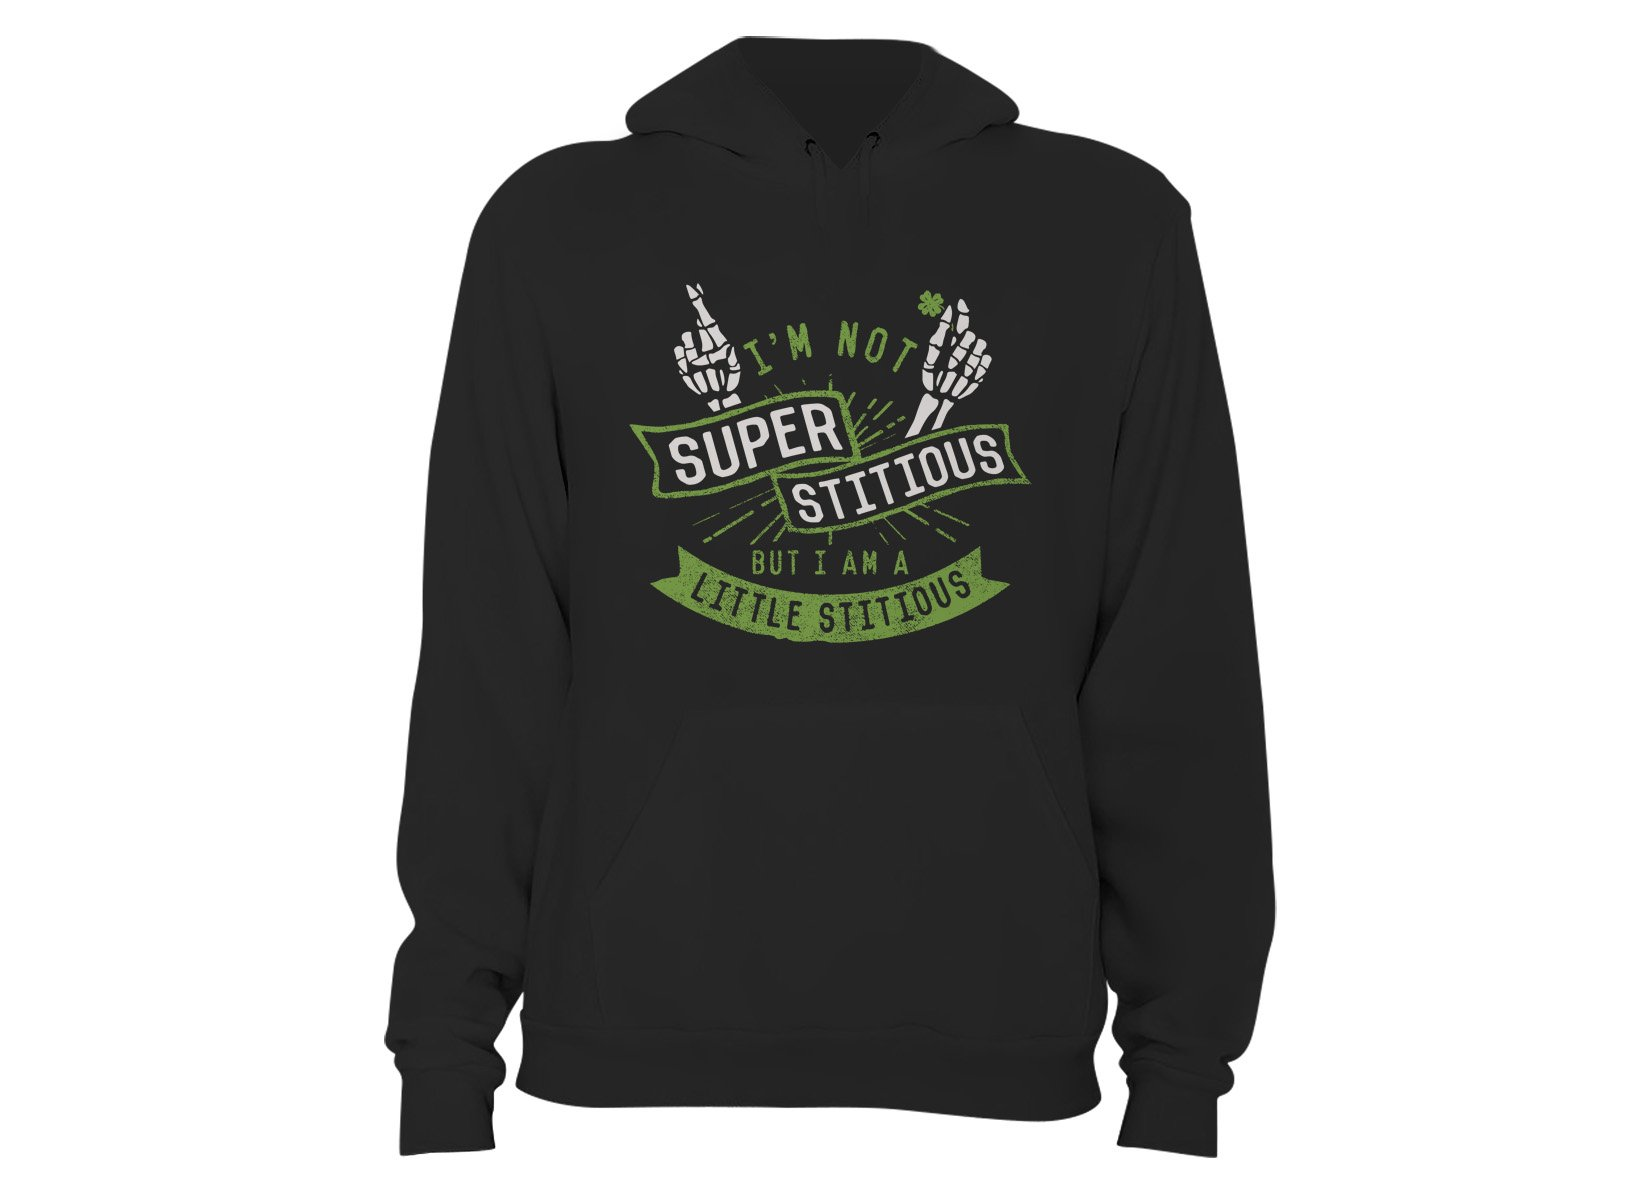 I'm Not Superstitious, But I Am A Little Stitious on Hoodie